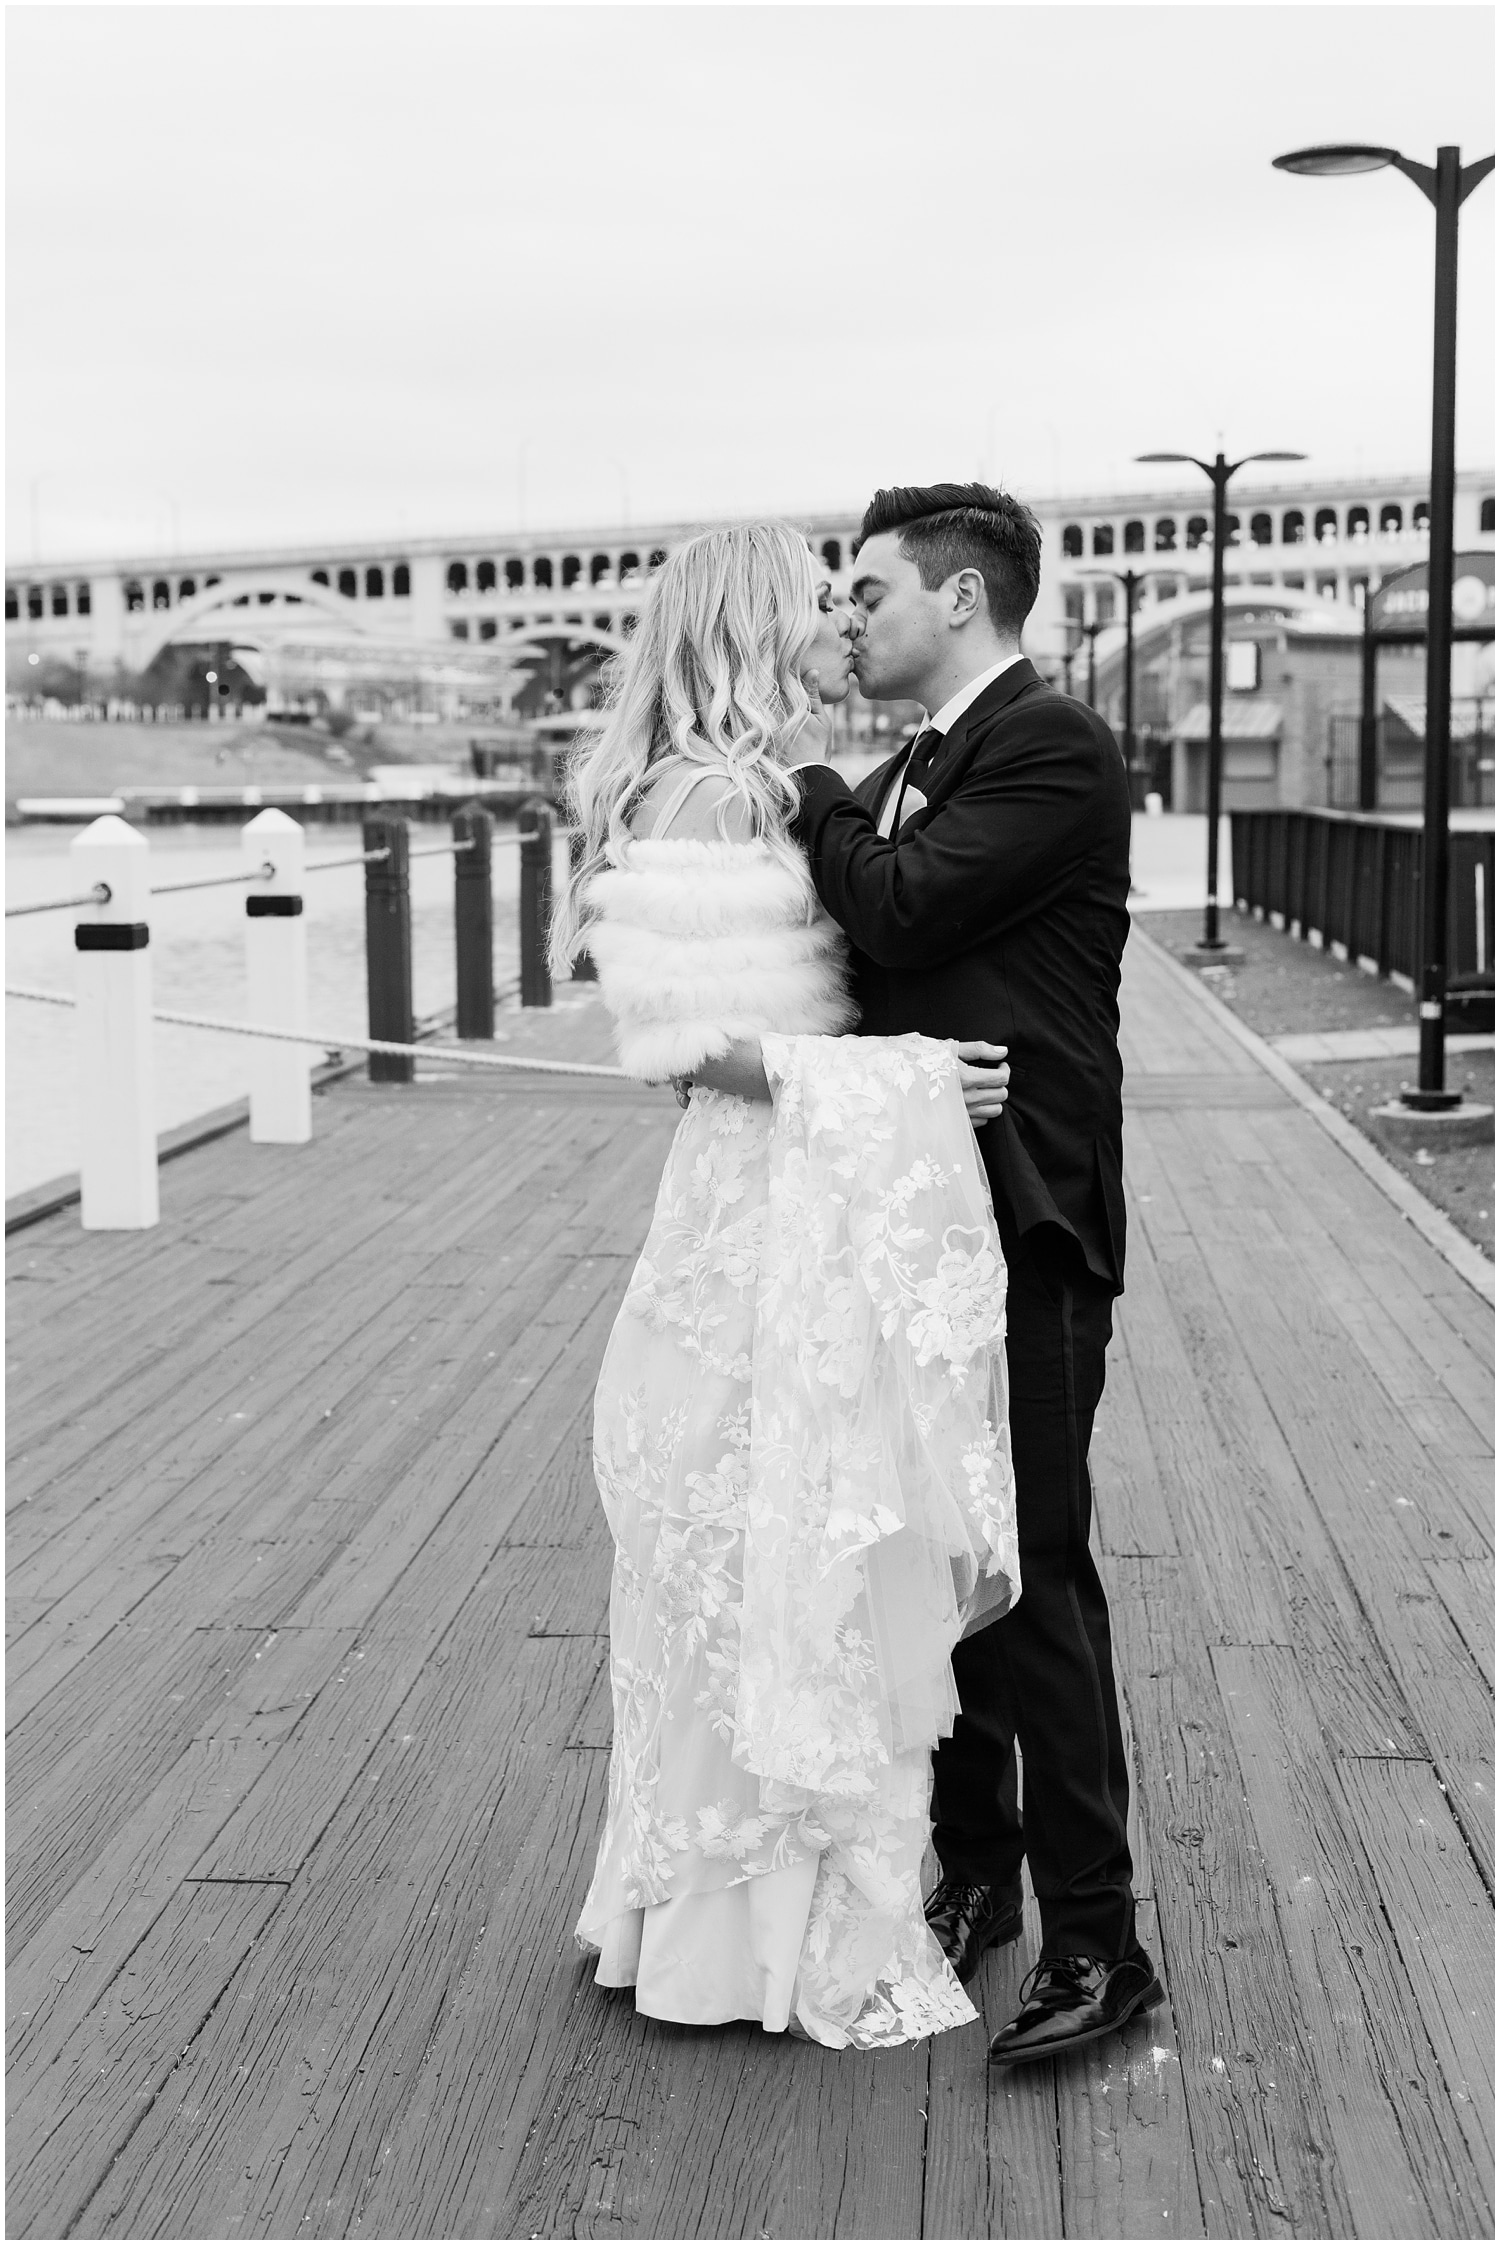 adam lowe photography, wedding, style, love, bride and groom, Cleveland wedding, the black tux, bhldn, perfectly planned by val, made with love bridal, wedding dress, hilton, windows on the river, ohio wedding, columbus